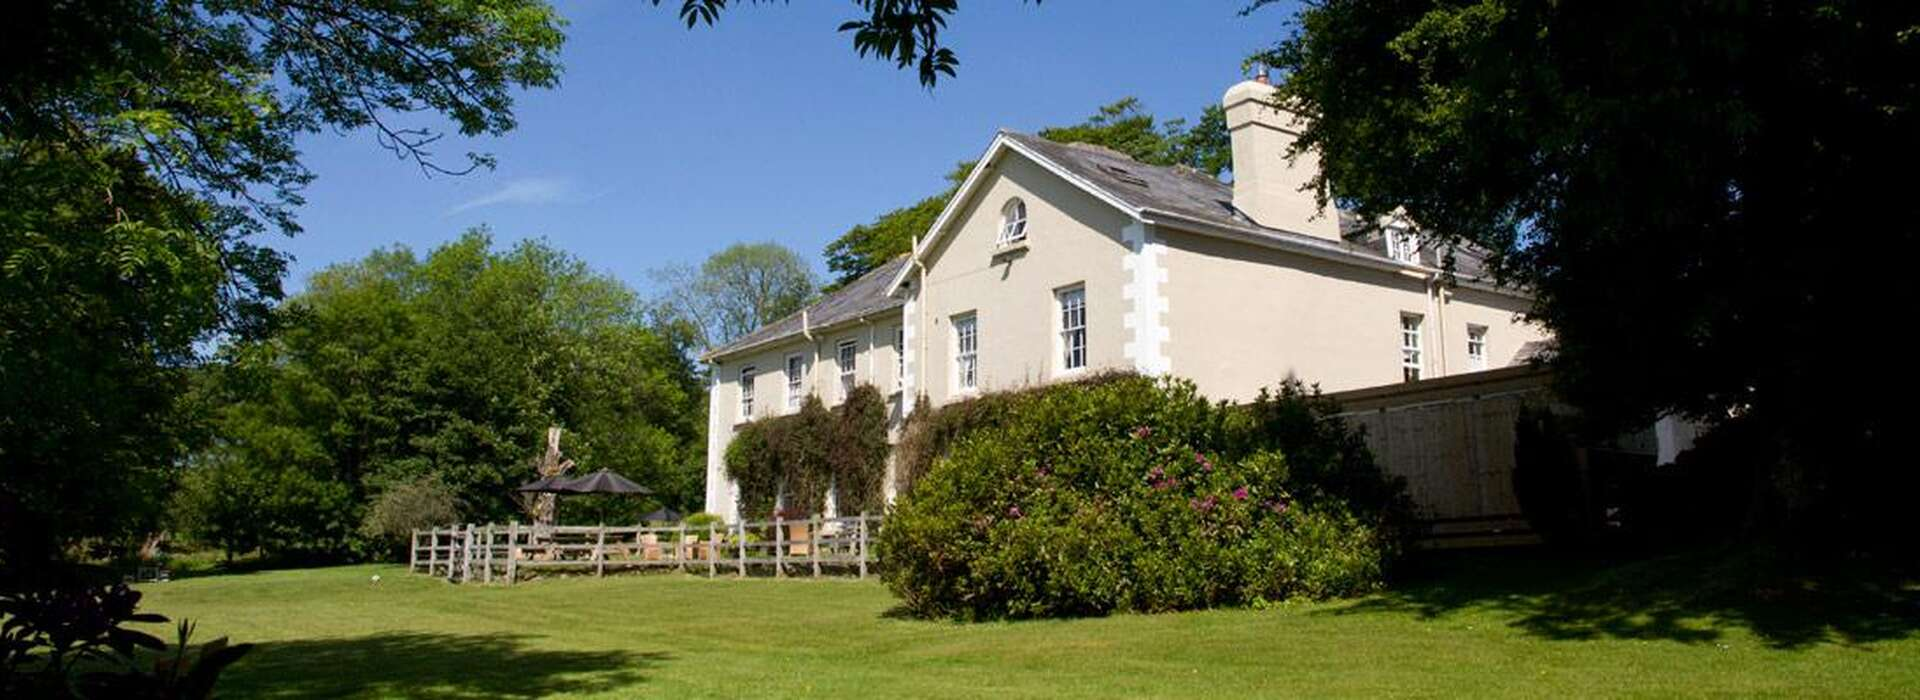 Prince Hall Country House Hotel Dartmoor Restaurant Dartmoor